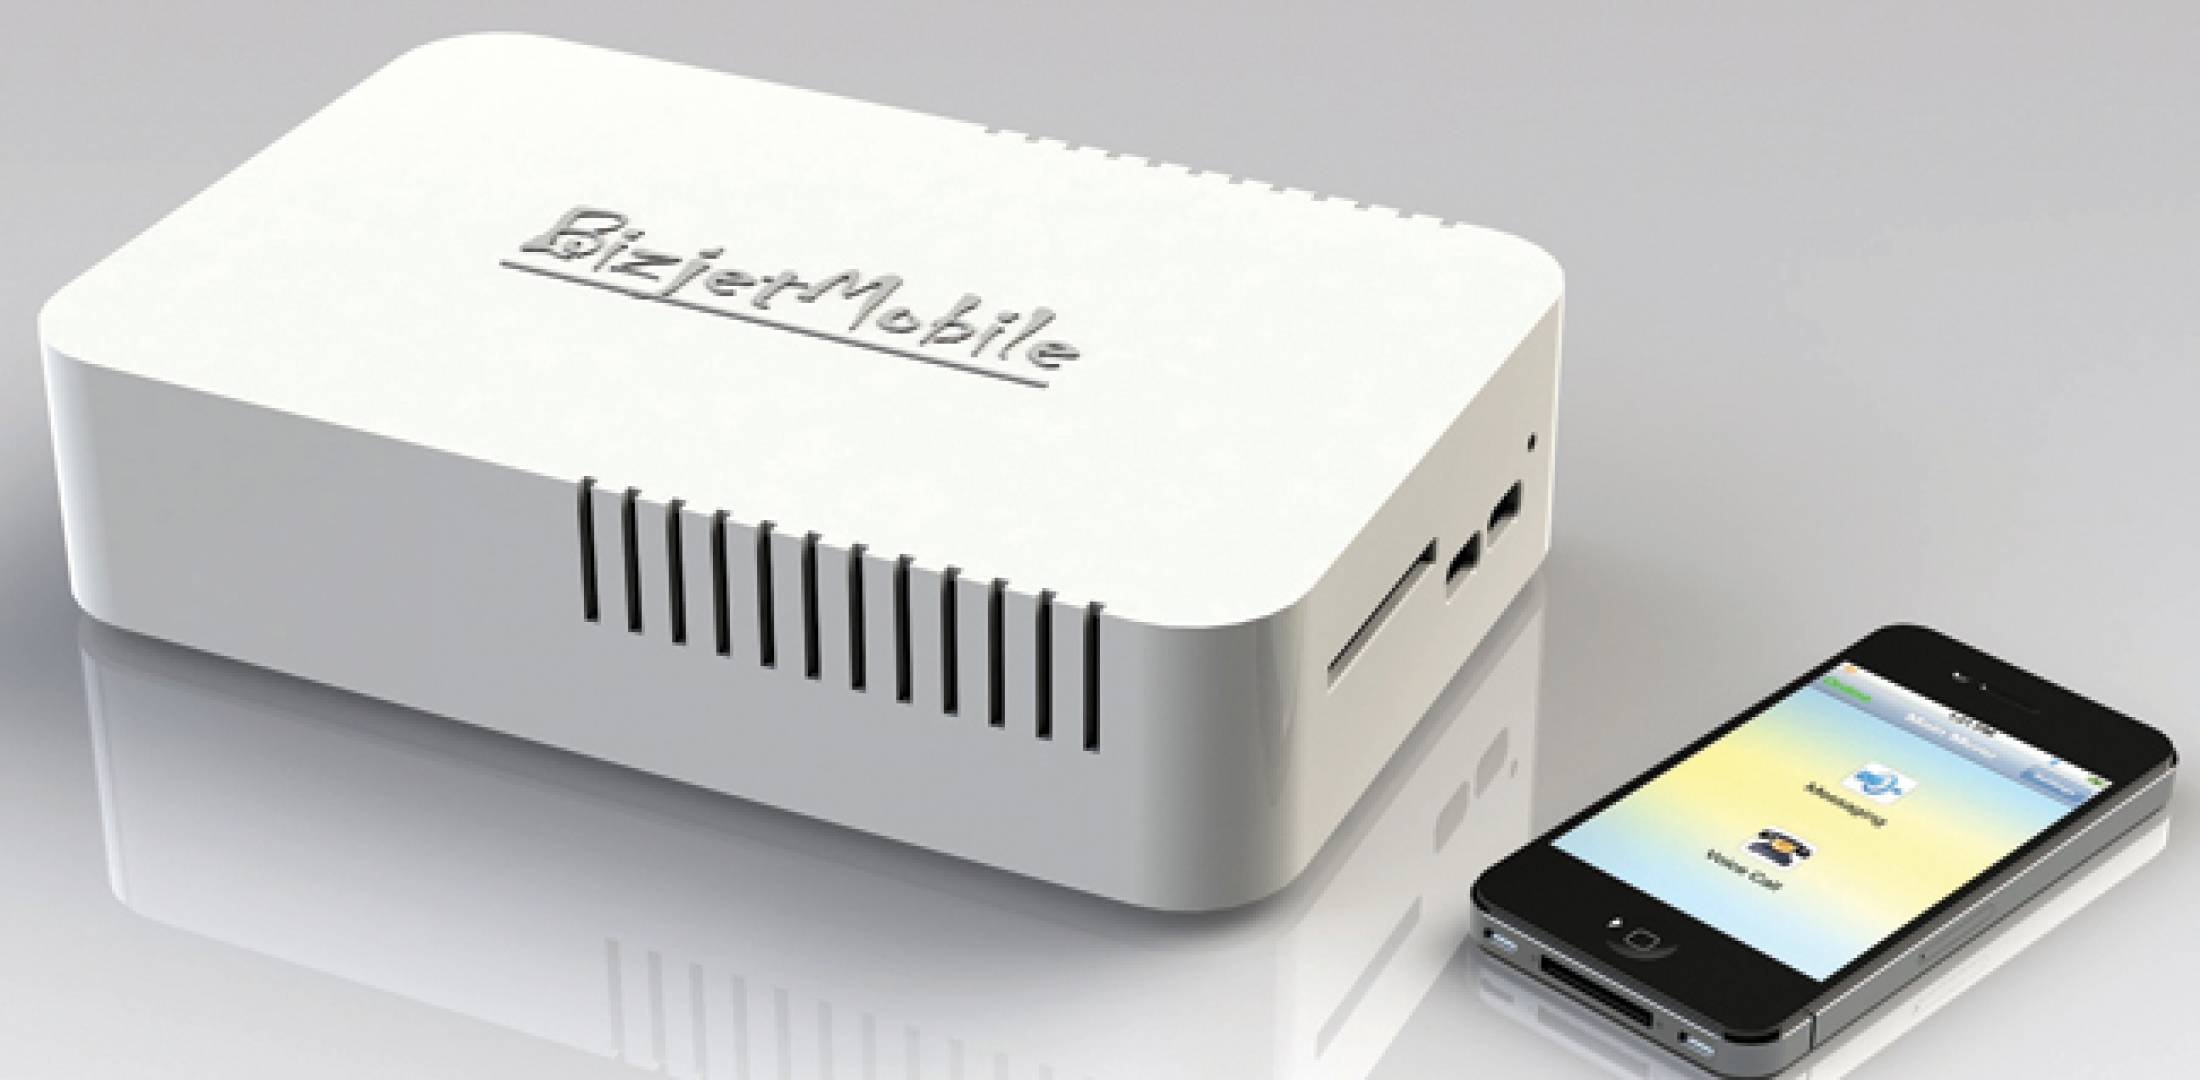 The BizjetMobile app allows users to access SMS text and e-mail via an onboard installed Aircell/Iridium system.